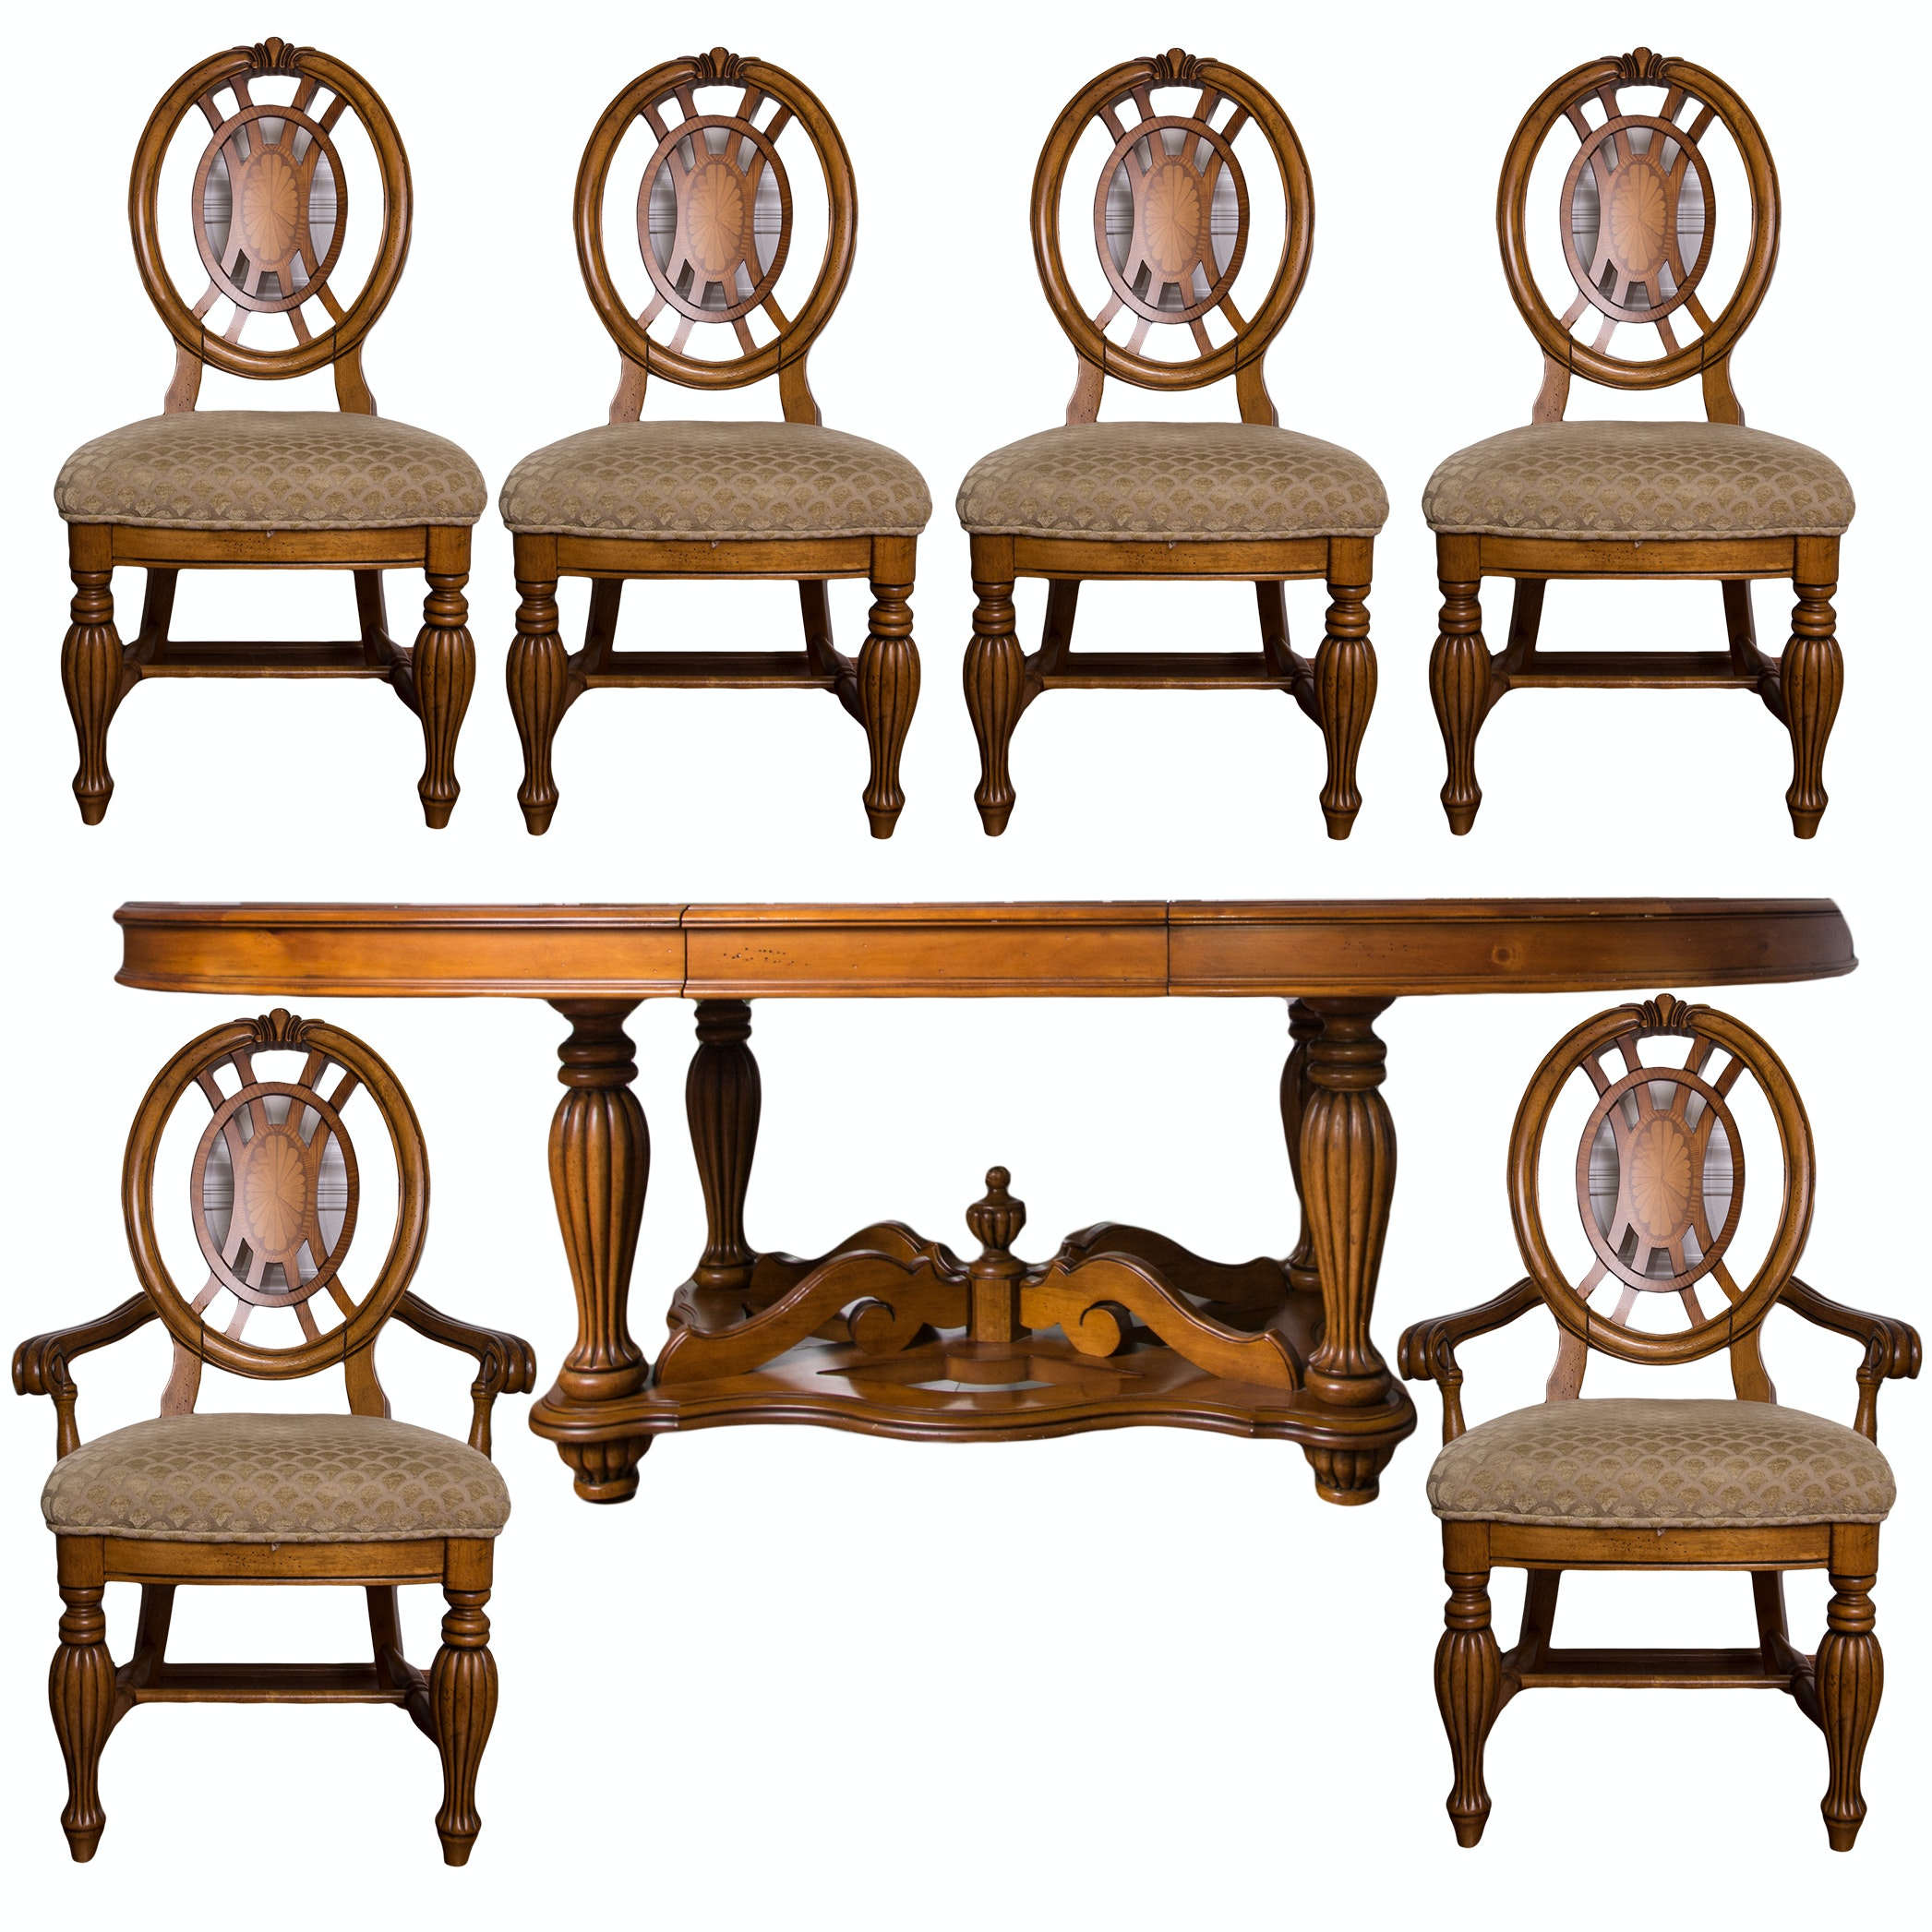 Jacobean Revival Style Dining Table and Chairs by American Signature